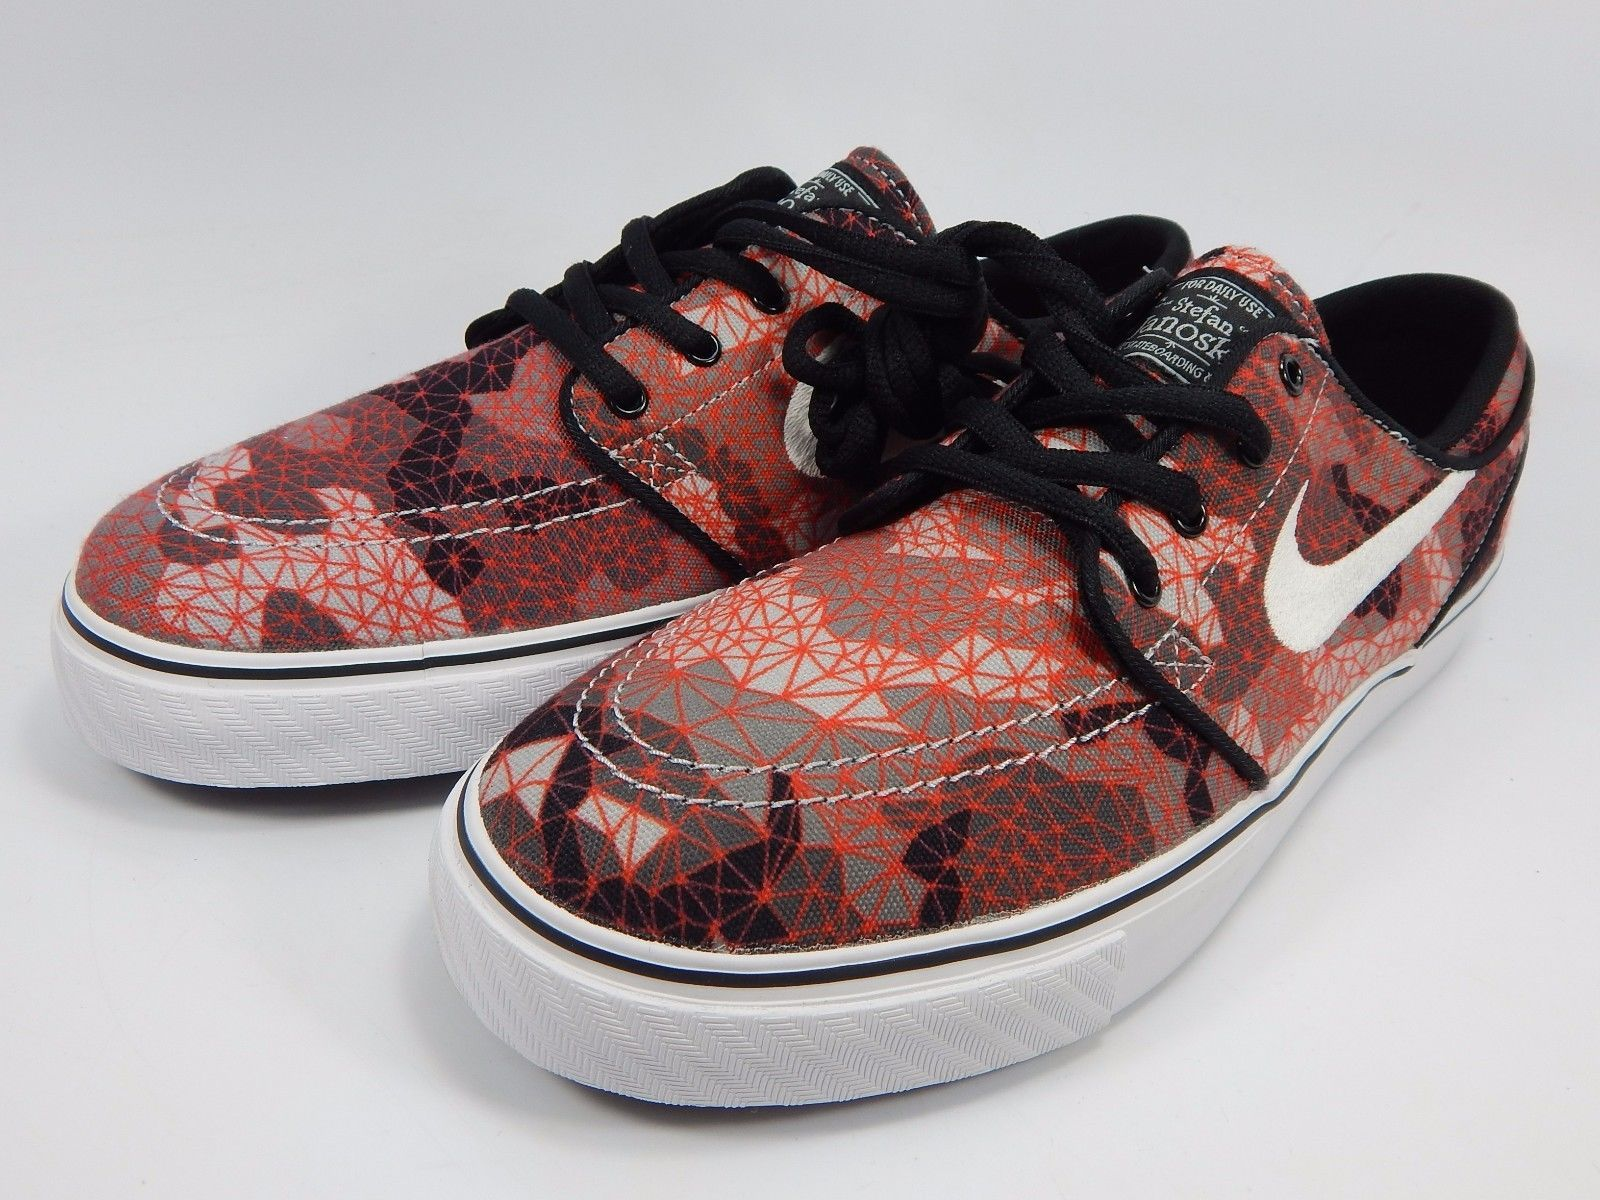 Nike Stefan Janoski Canvas Kid's Youth Skate Shoes Size 7 Y (M) EU 40 654862-010